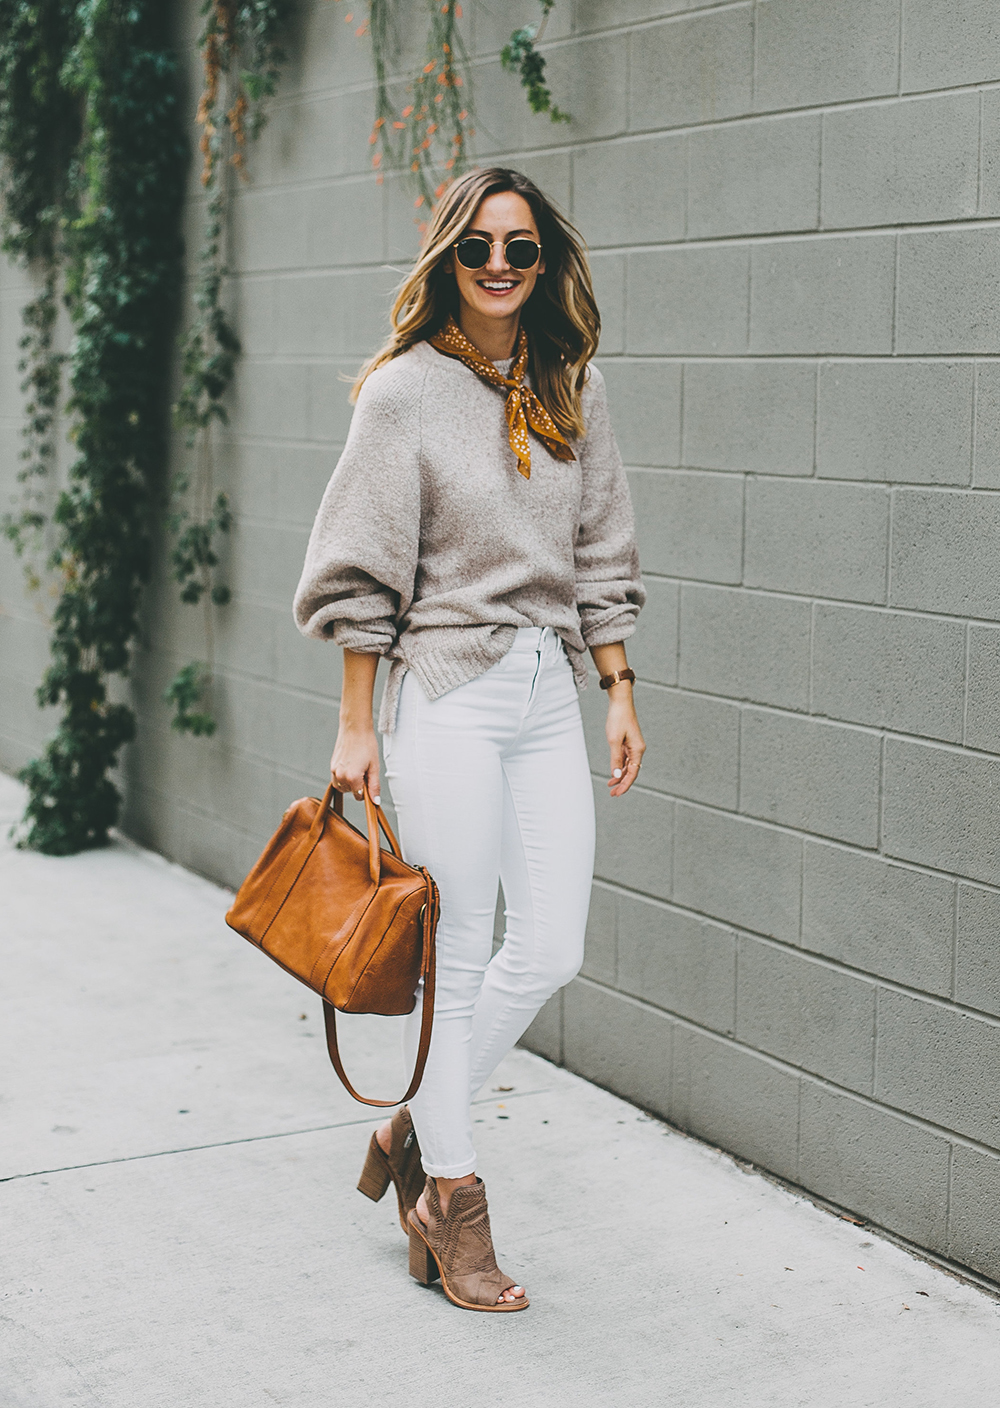 livvyland-blog-olivia-watson-austin-texas-fashion-blogger-mauve-blush-sweater-white-denim-peep-toe-booties-fall-outfit-idea-2.jpg